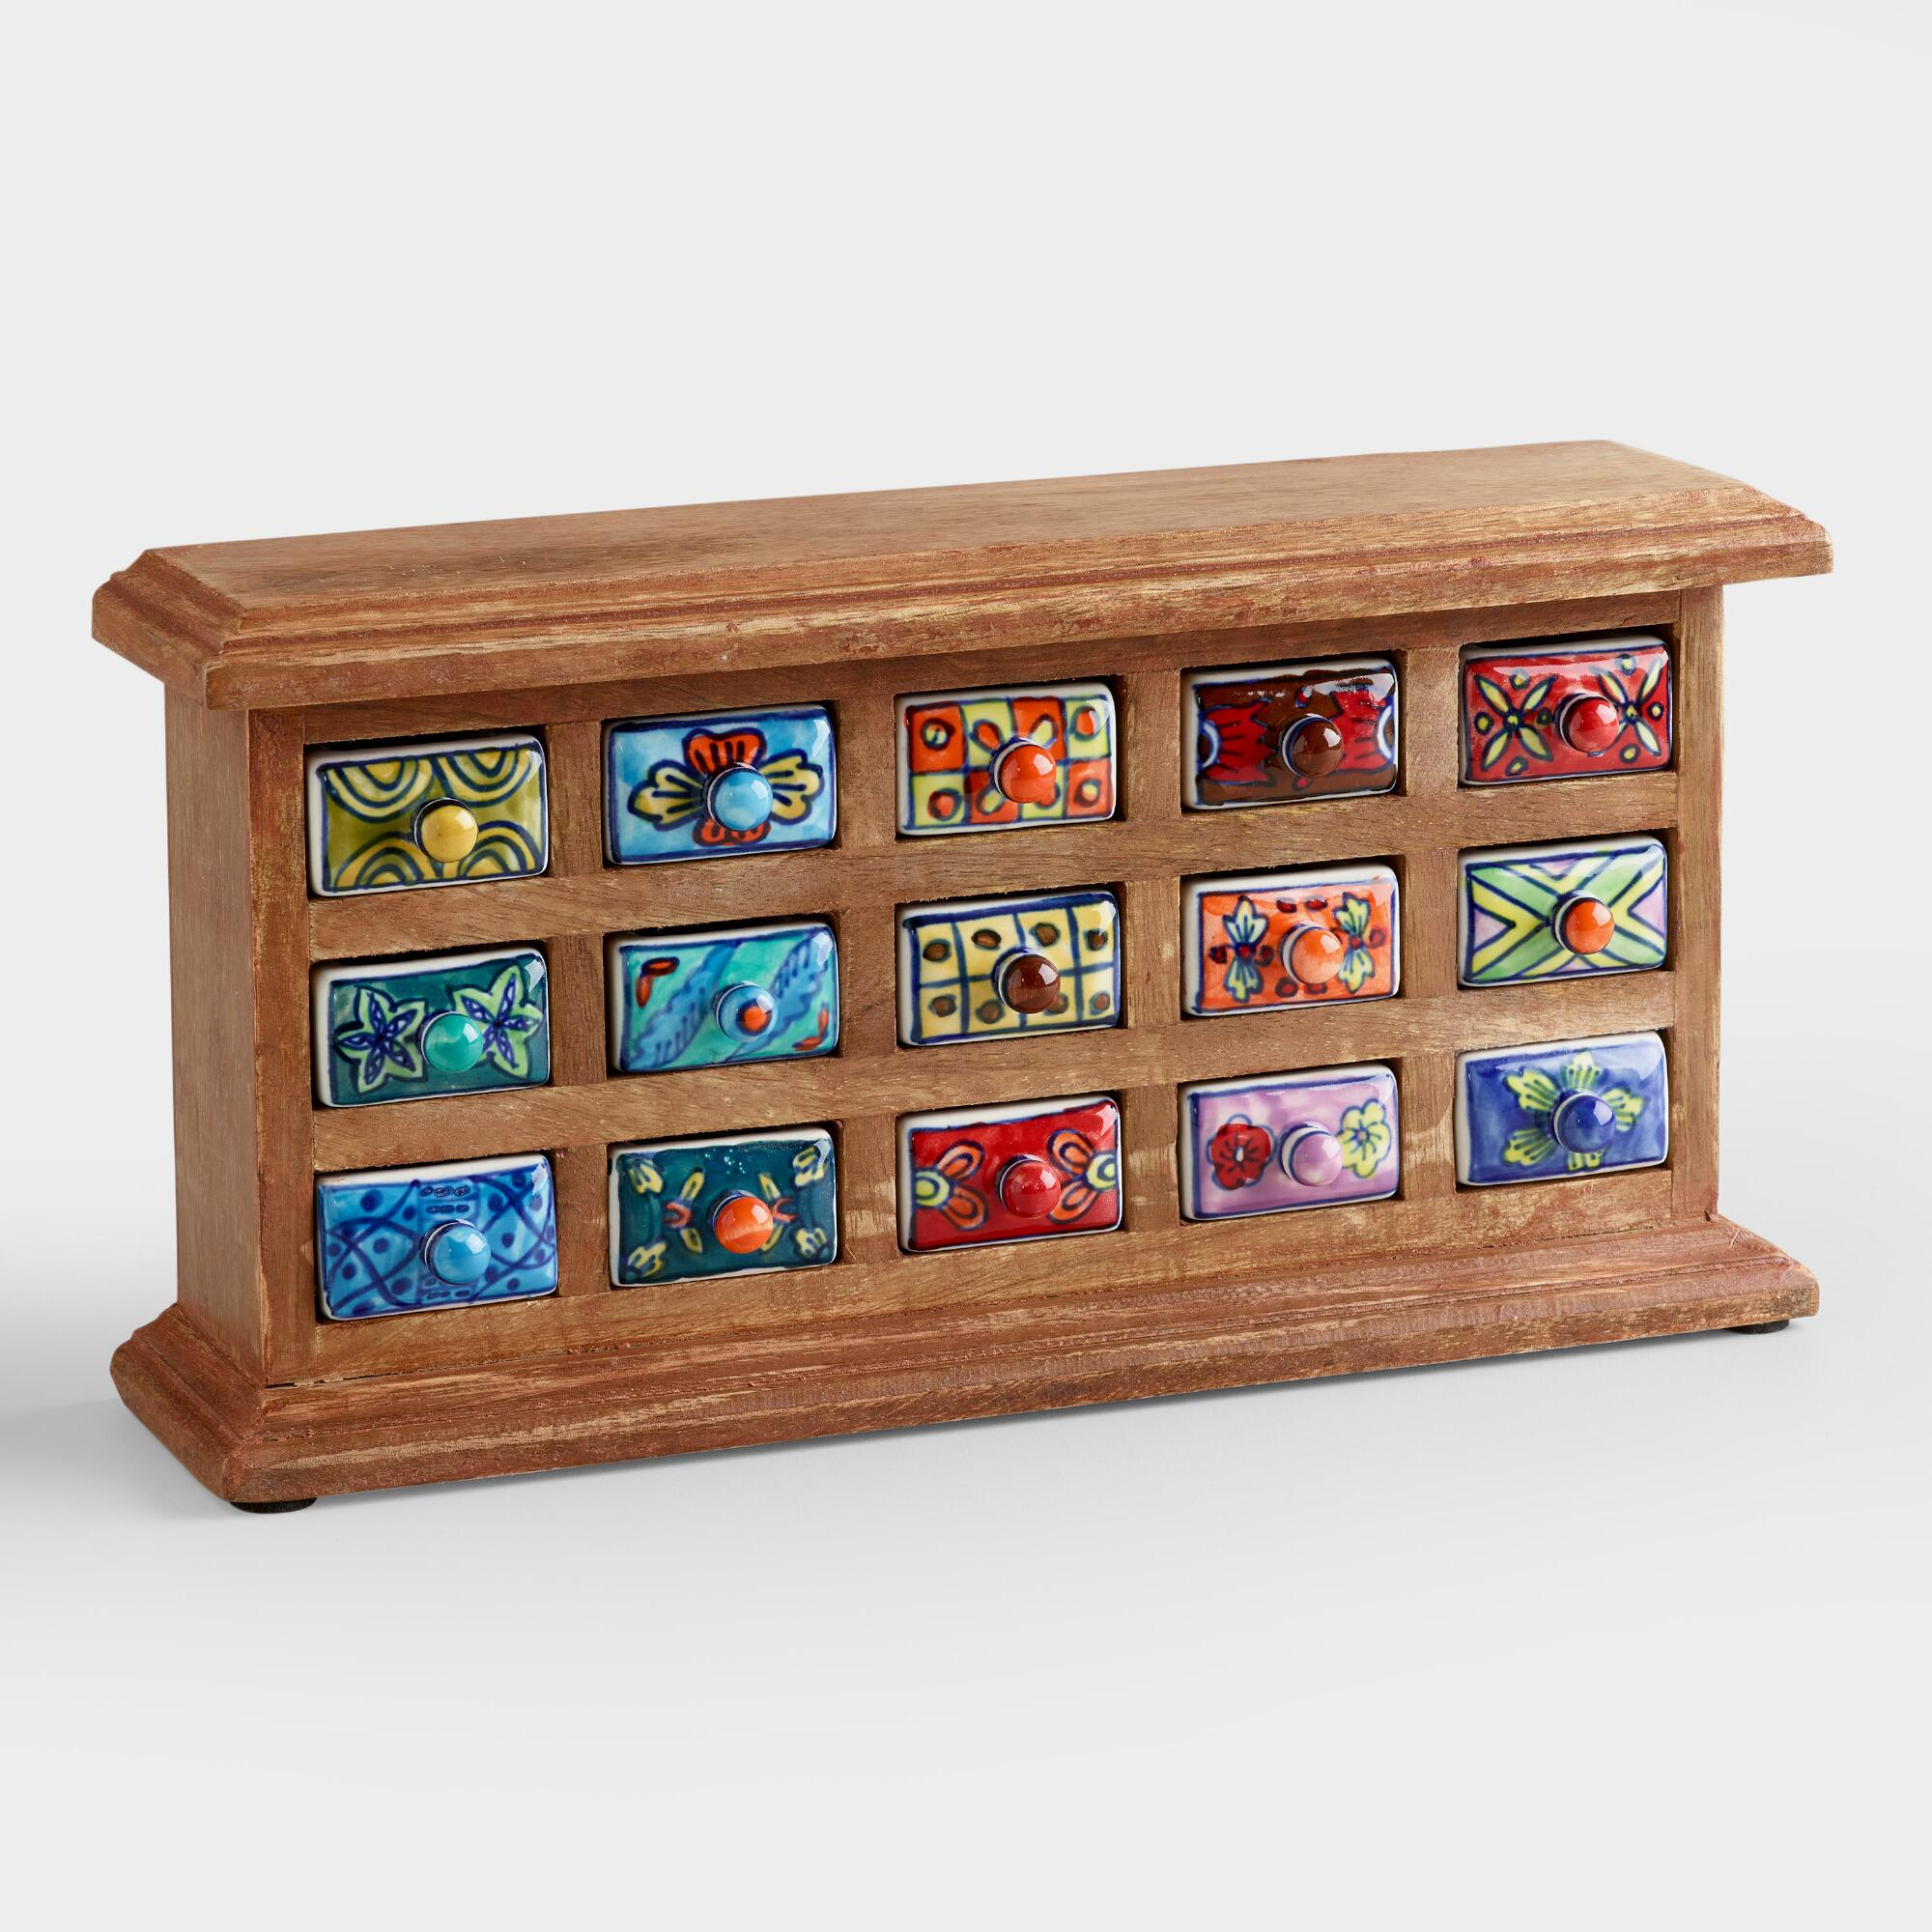 Marvelous photograph of Rectangular Ceramic Drawer Wood Chest World Market with #7B4026 color and 2000x2000 pixels